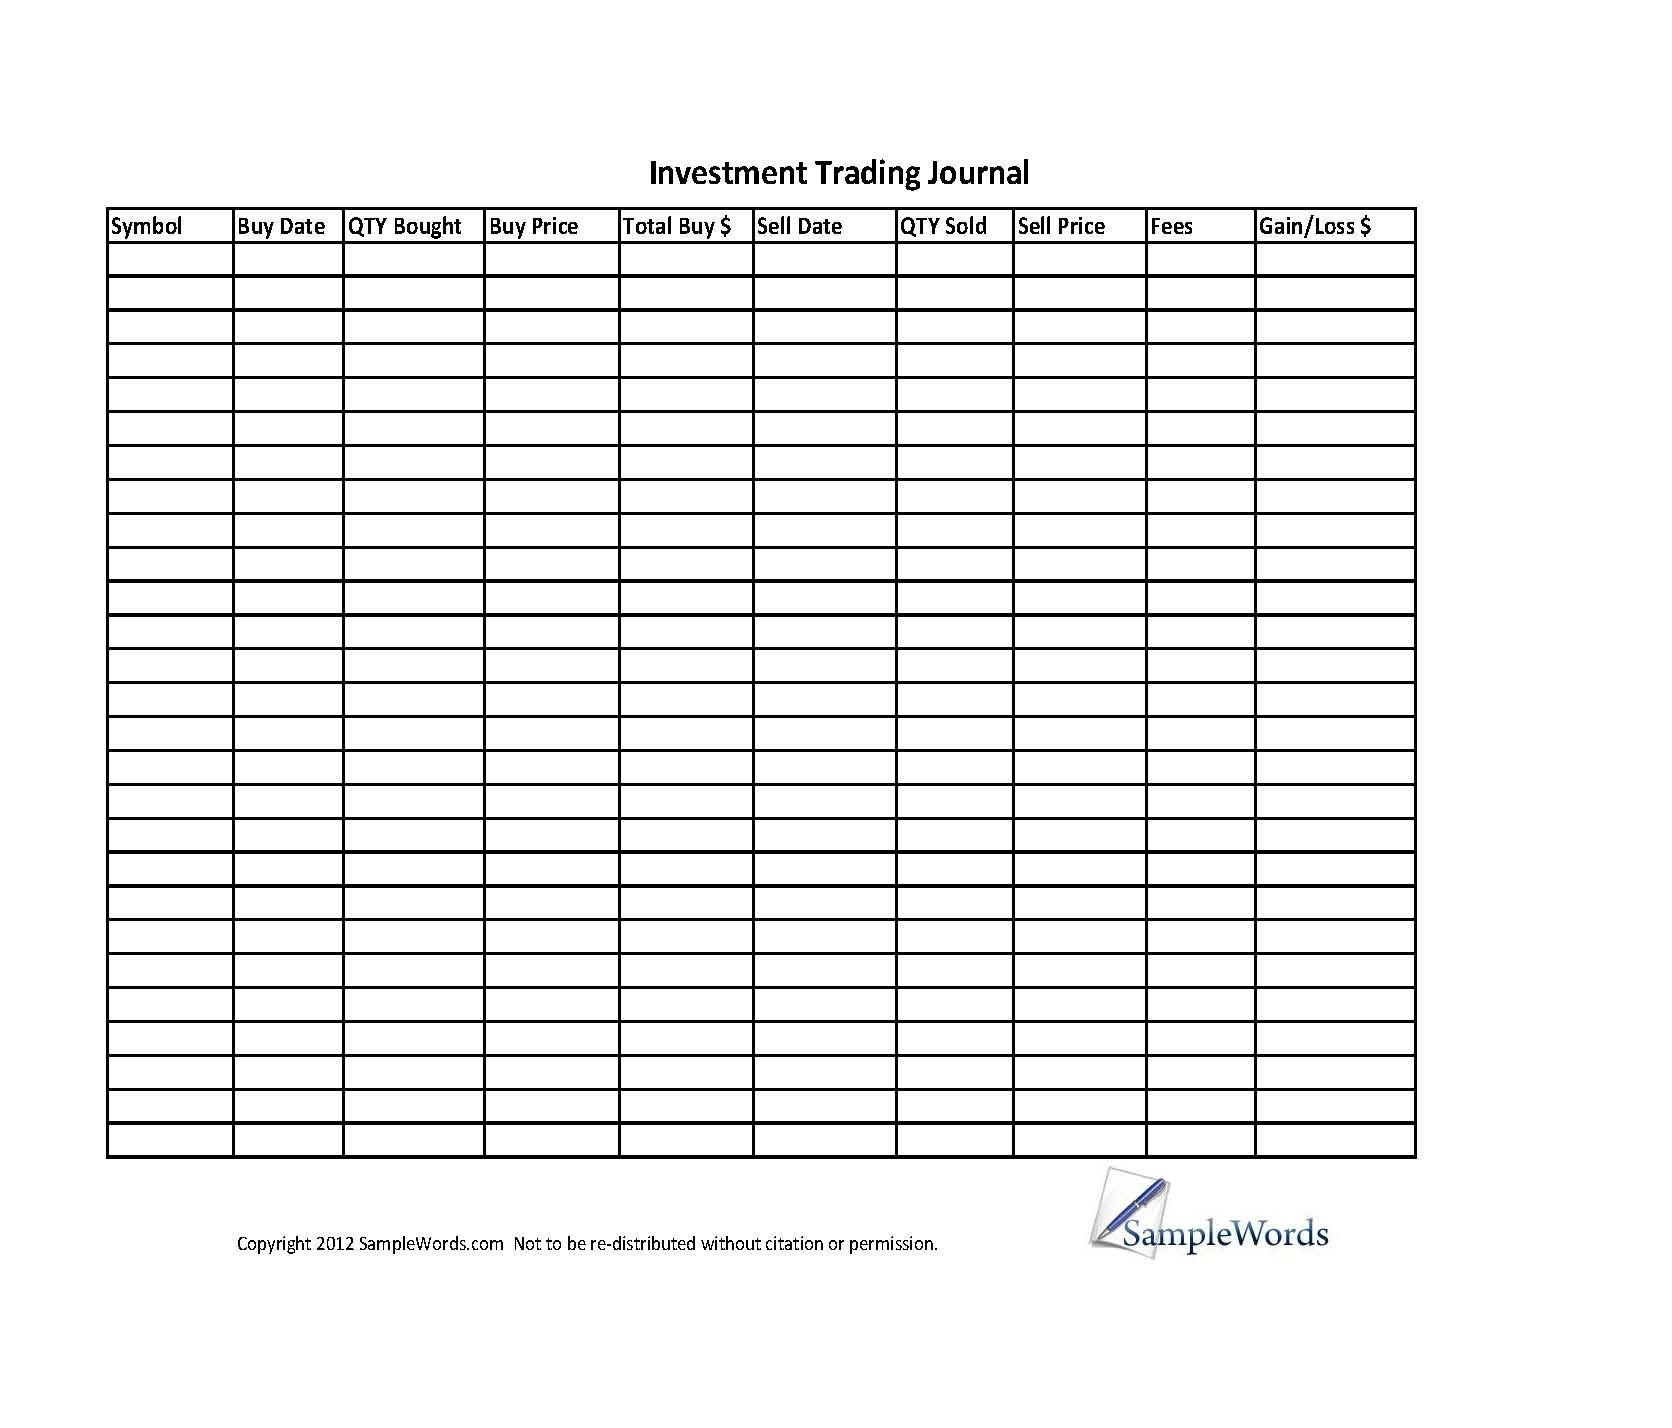 Day Trading Tracking Spreadsheet with Investment Stock Trading Journal Spreadsheet | db-excel.com